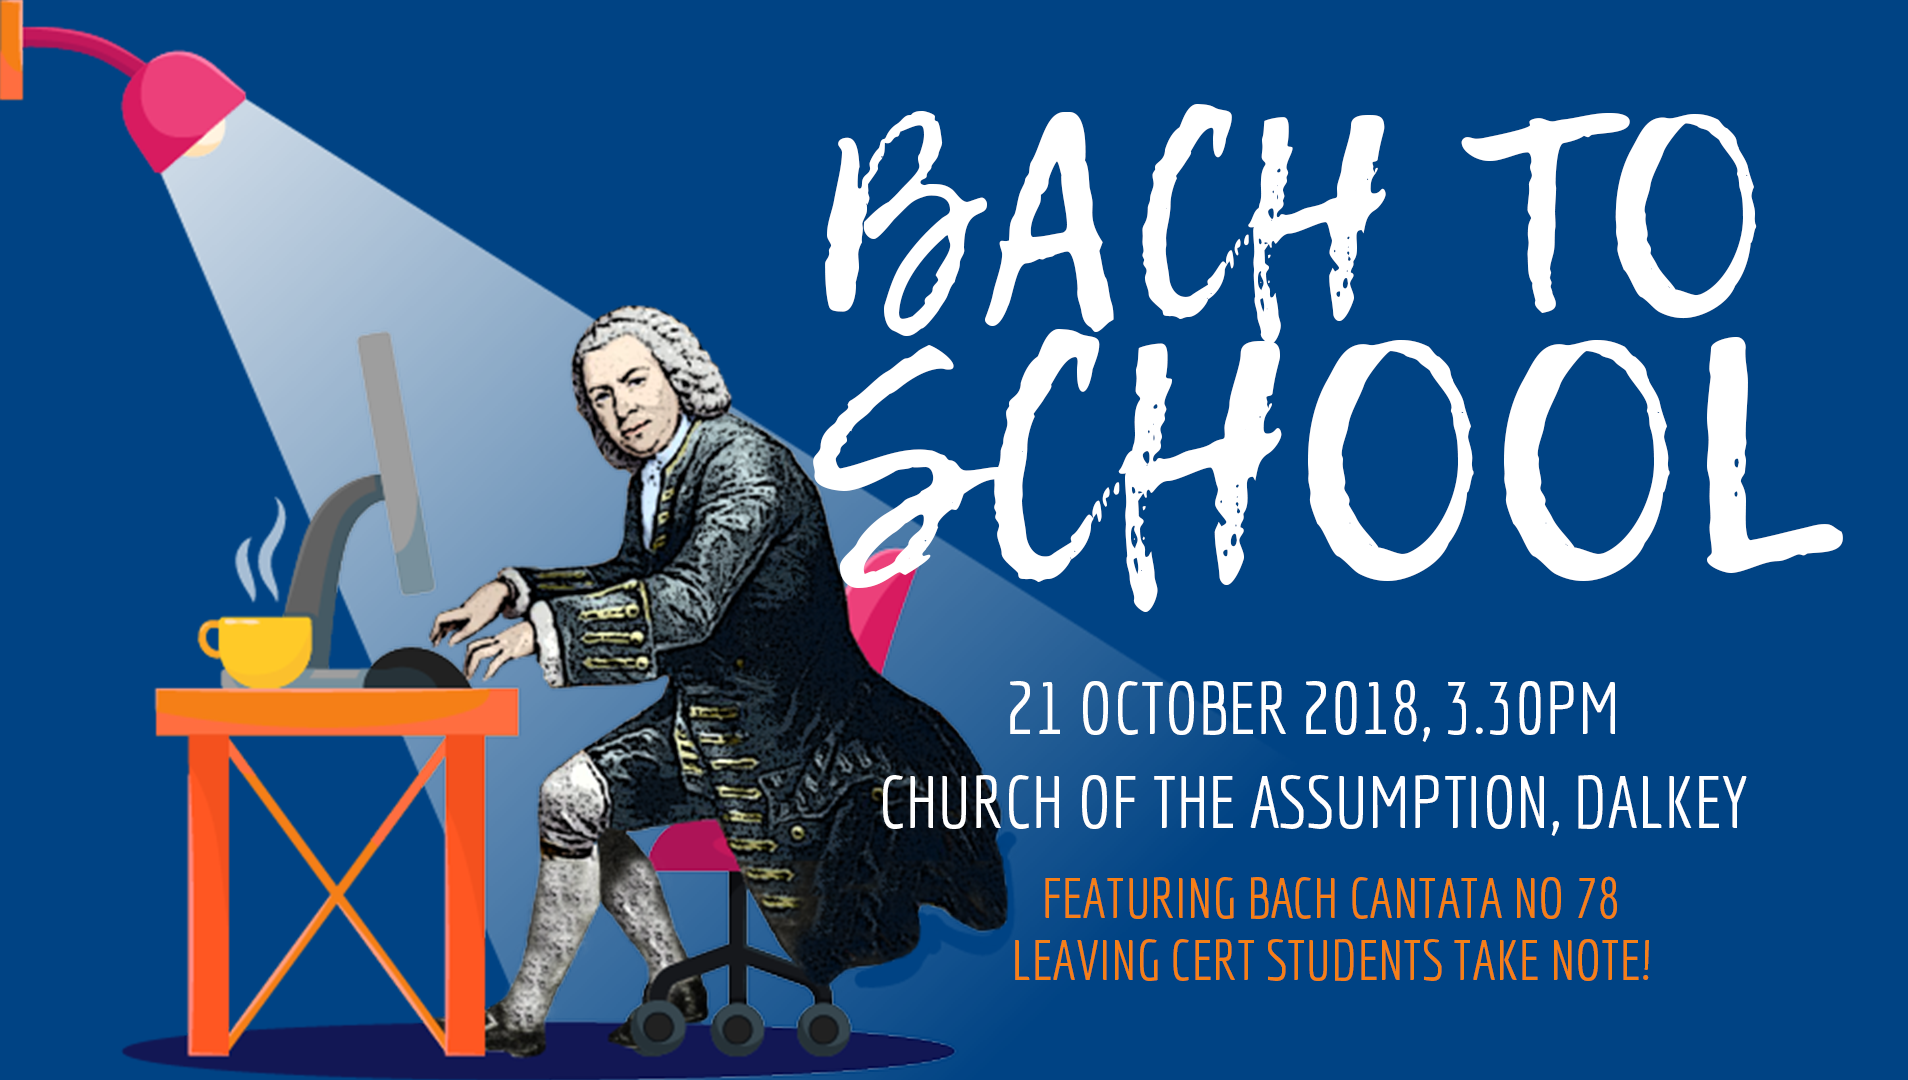 Bach to school, 21 october 2018